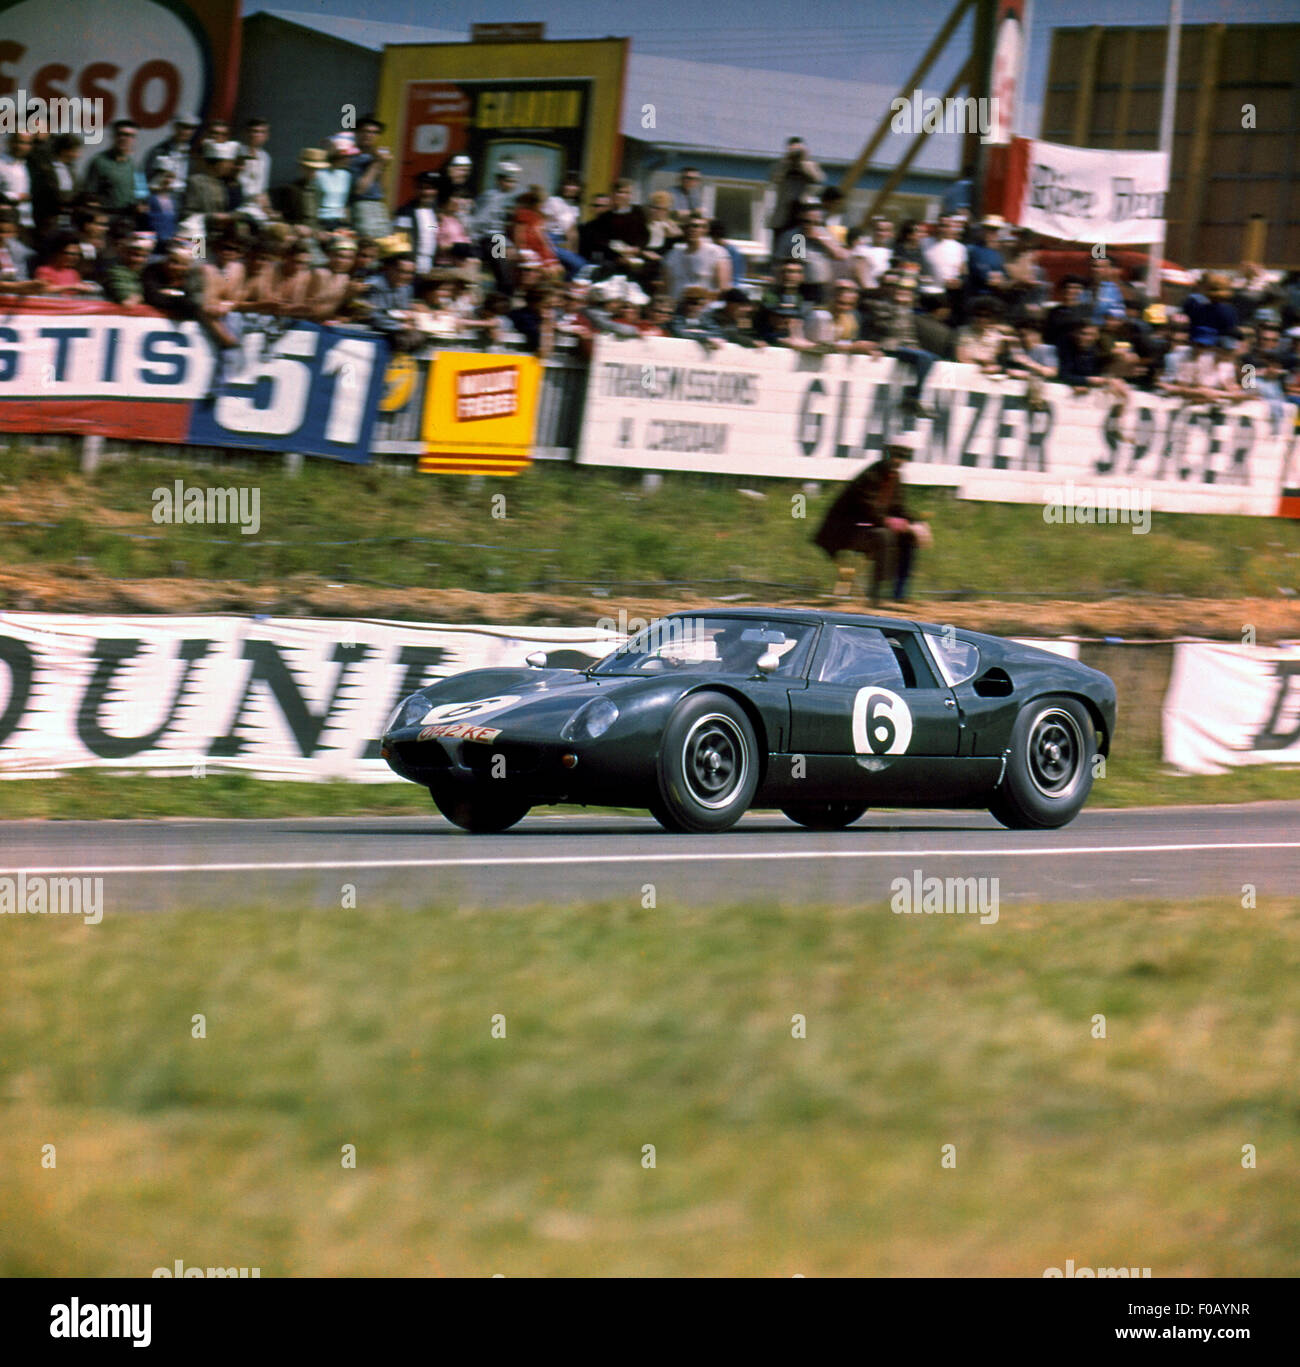 Le Mans 16th June 1963. Richard Attwood,David Hobbs Lola Mk.6 GT Ford. - Stock Image